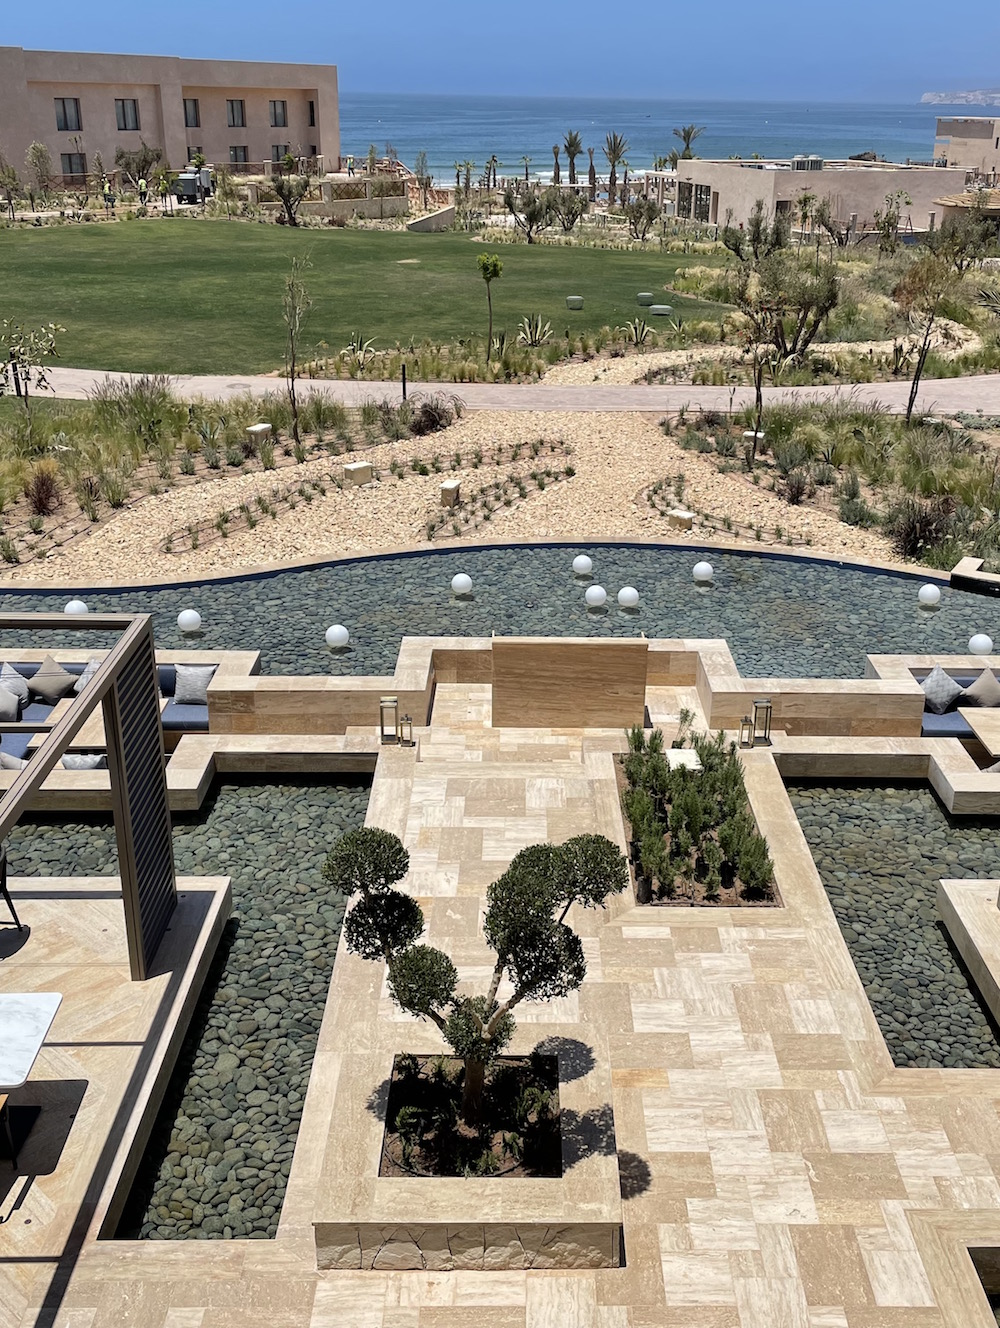 Fairmont Taghazout Bay, opening in July